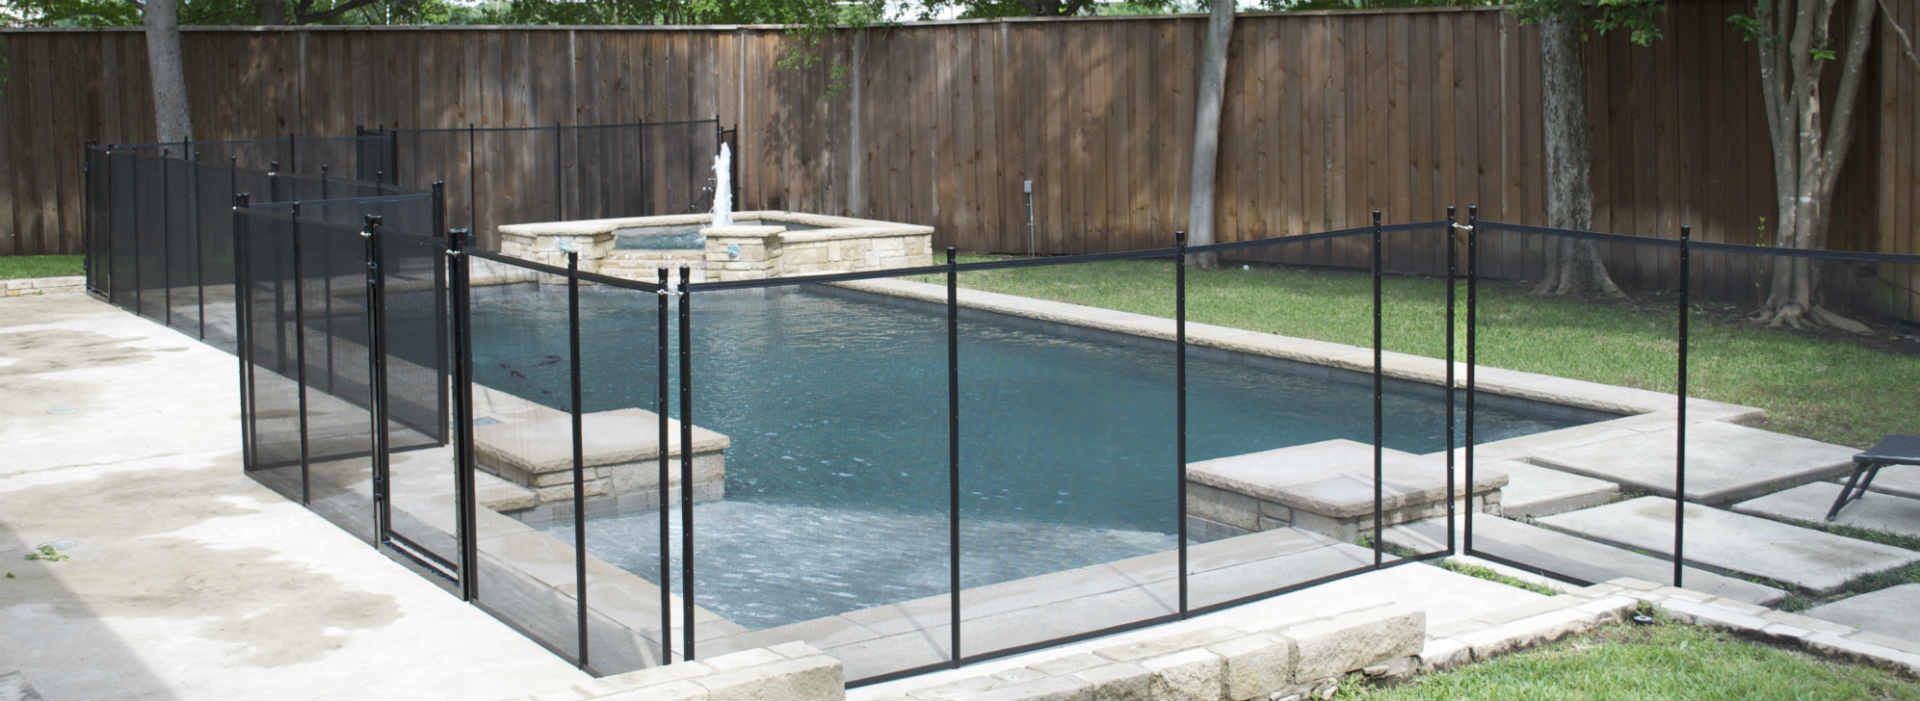 north texas pool fence locations